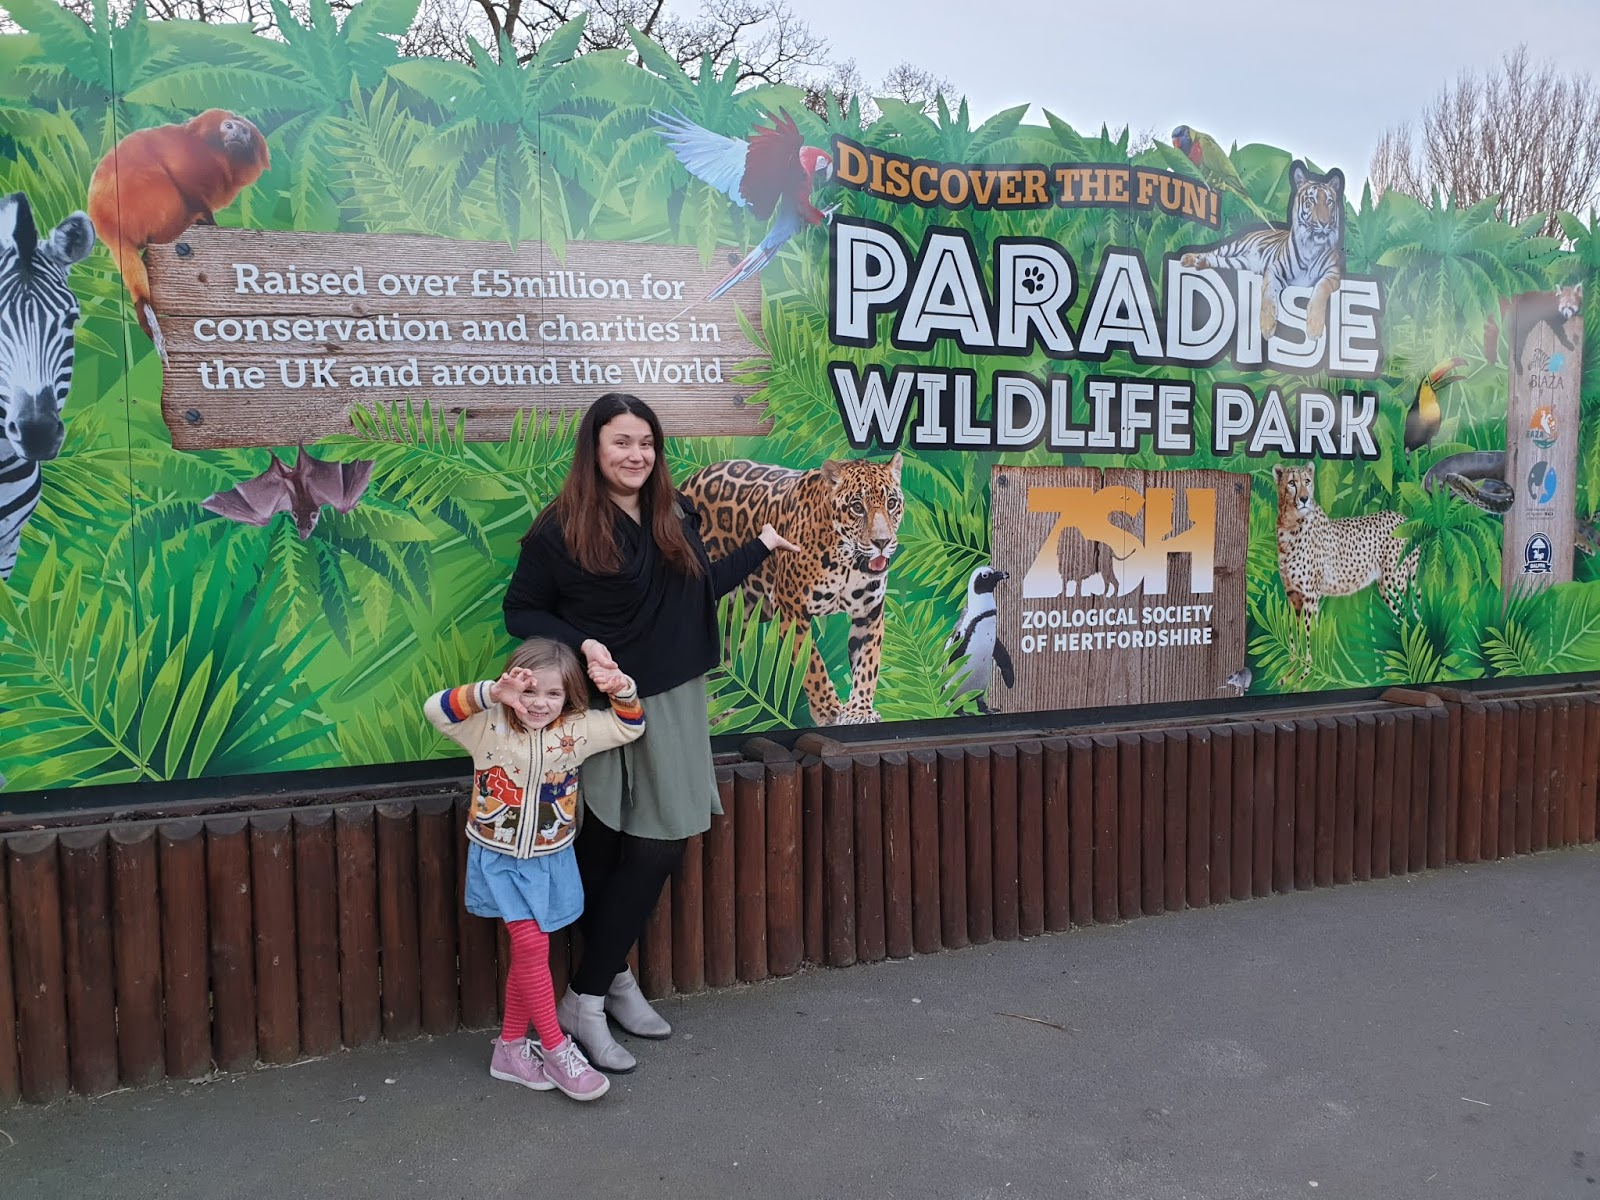 mum and daughter at paradise wildlife park entrance